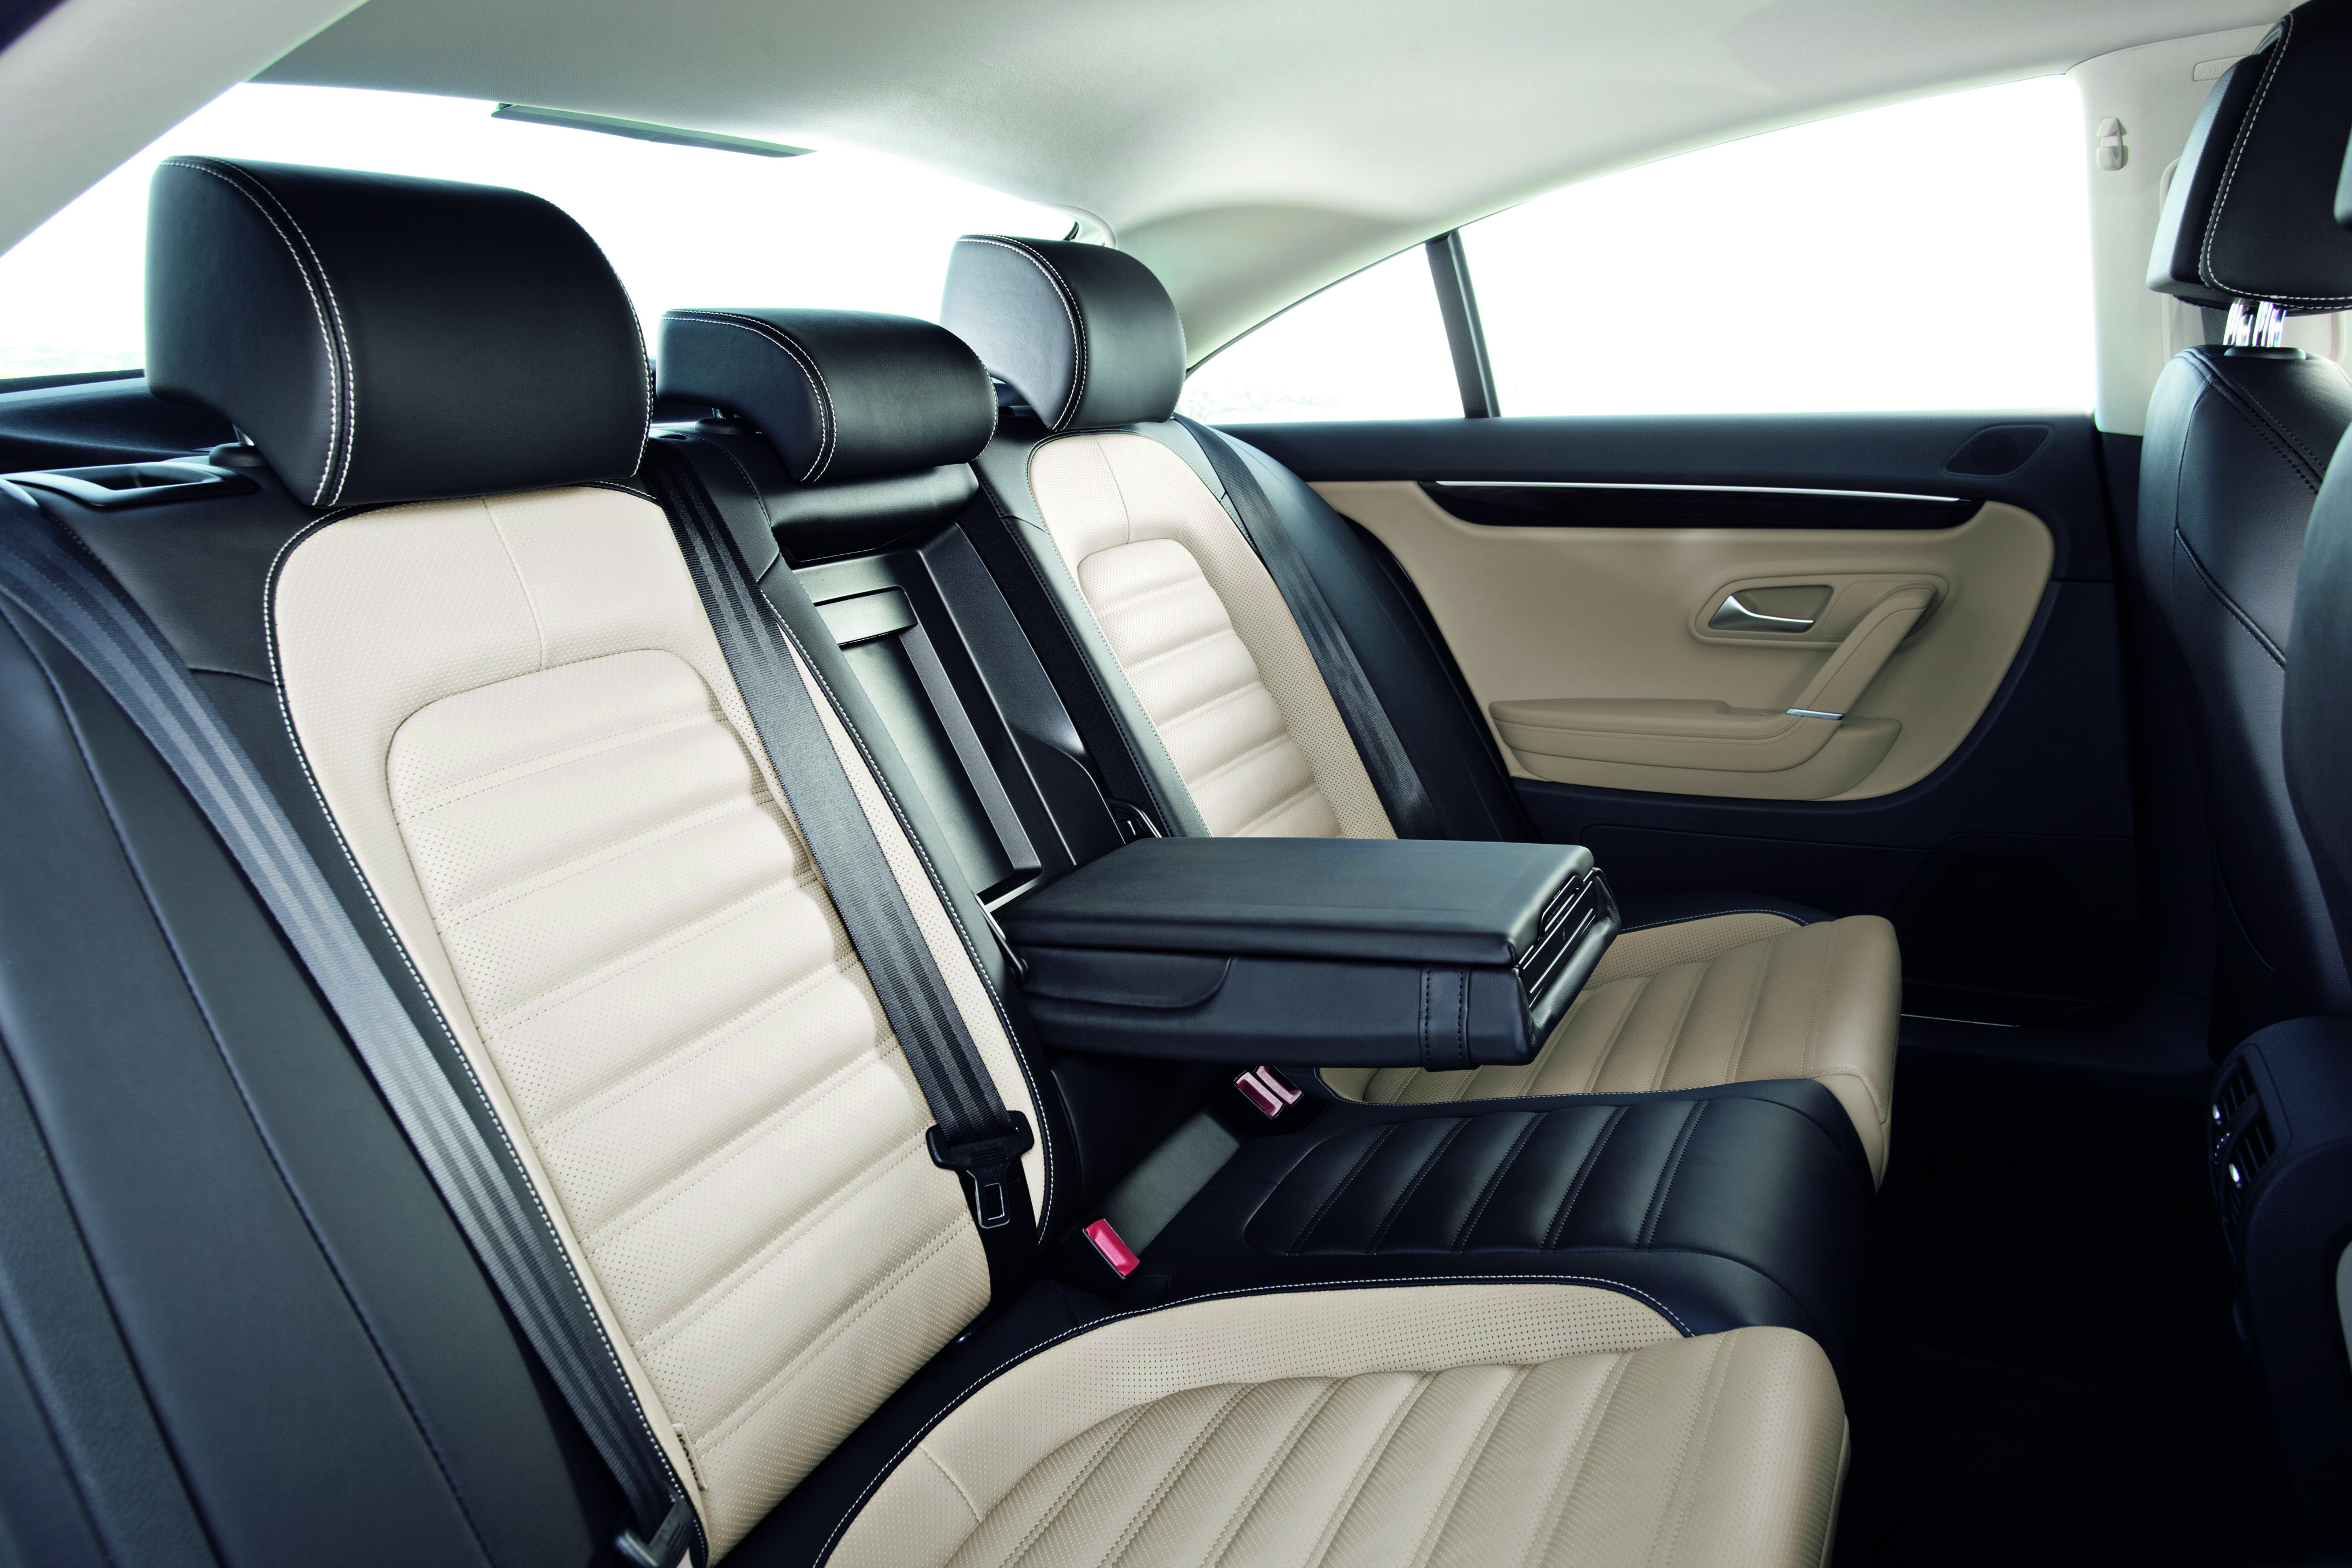 2013 Volkswagen CC: The Looks of a Coupe and the Versatility of a Sedan   Georgetown Volkswagen